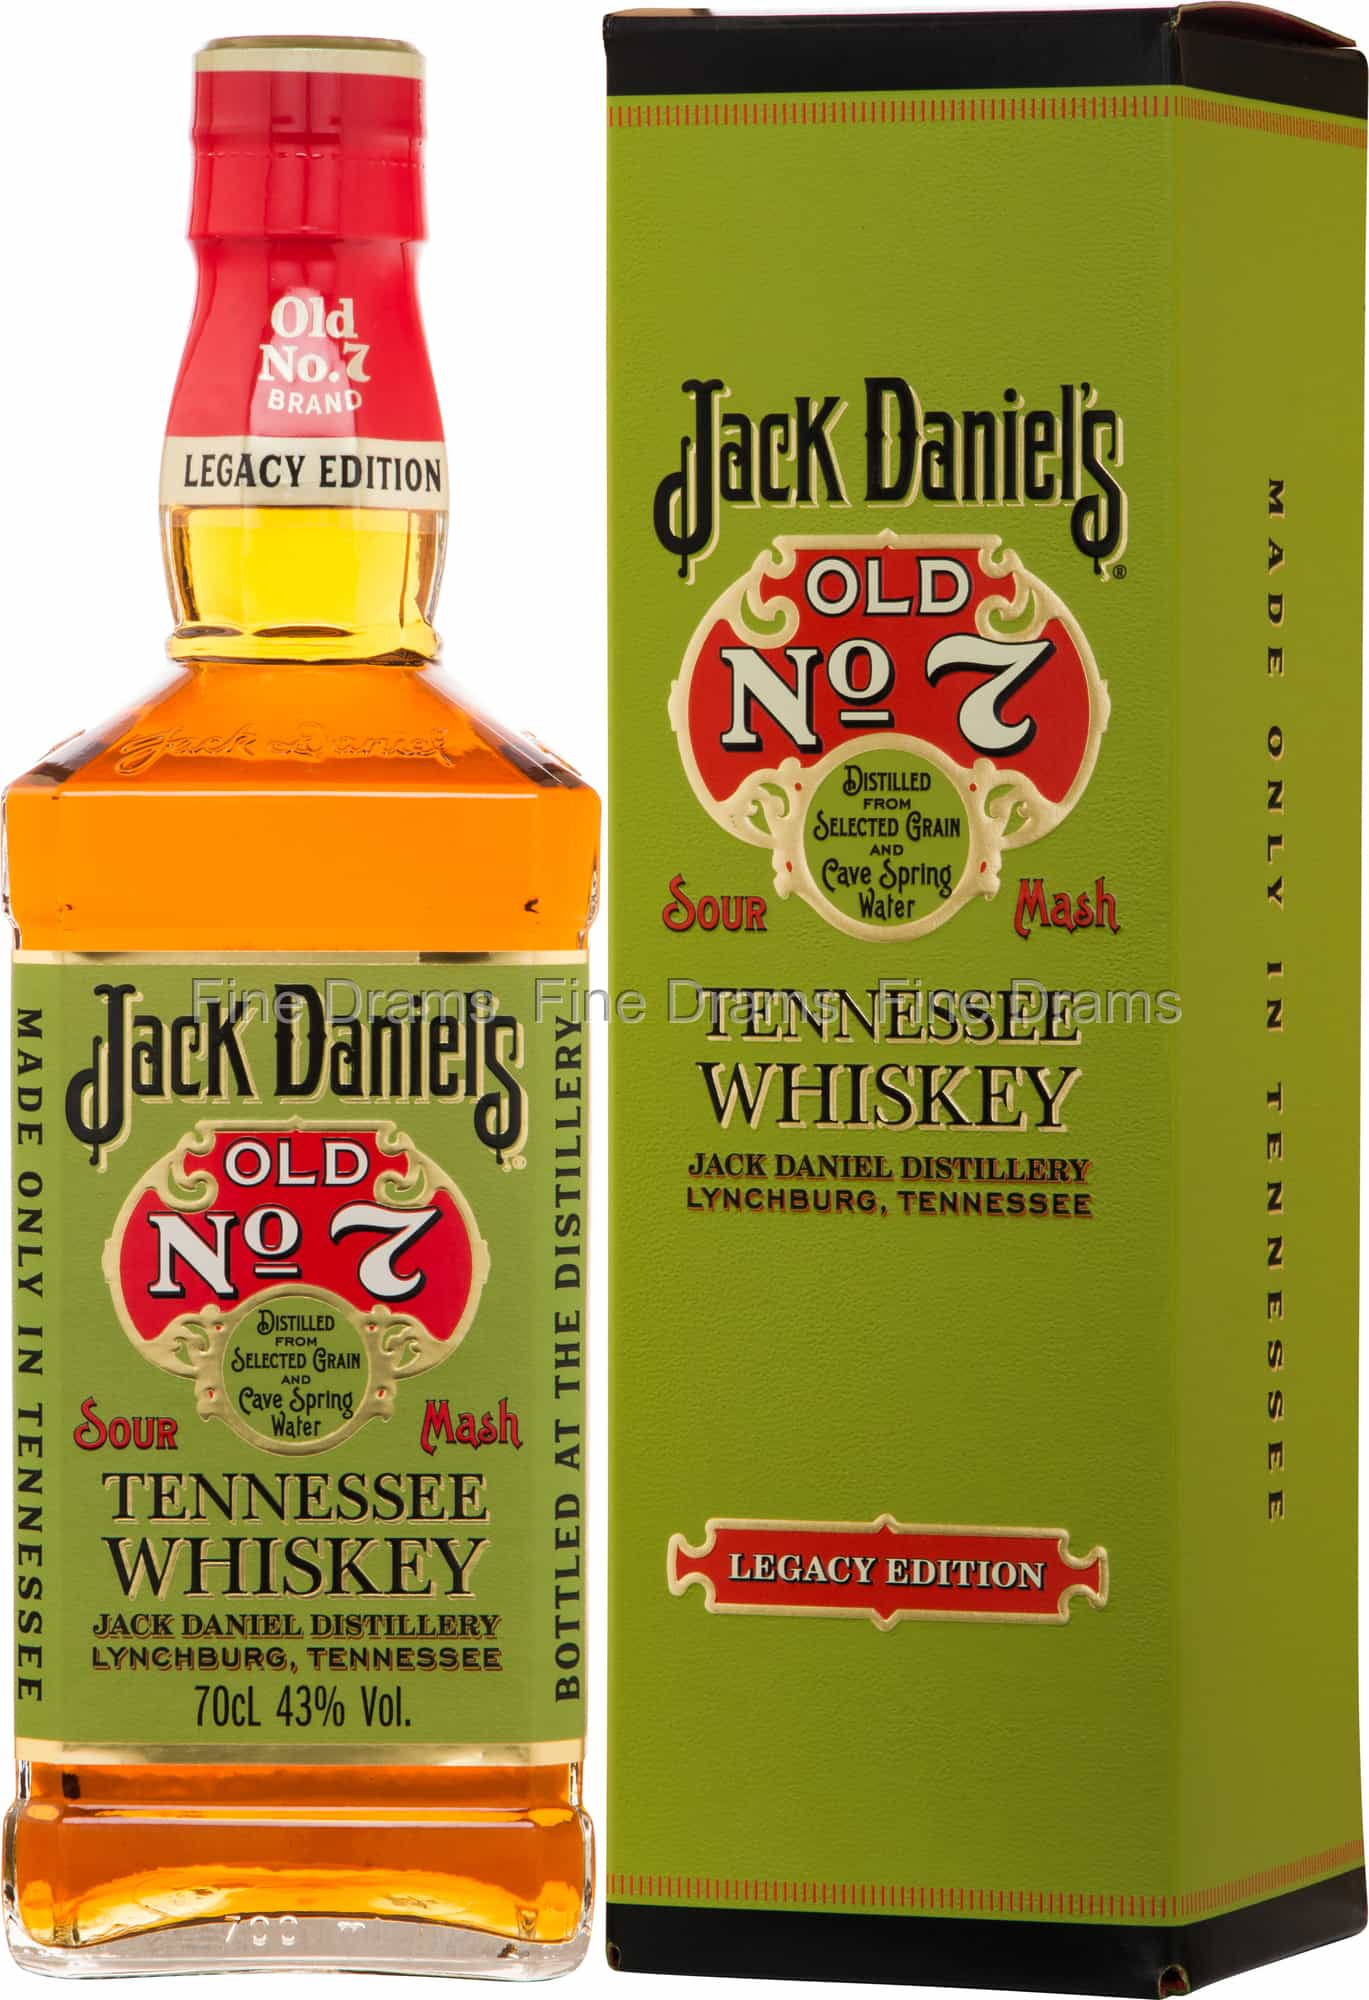 Jack Daniel's Old No. 7 Legacy Edition Whisky